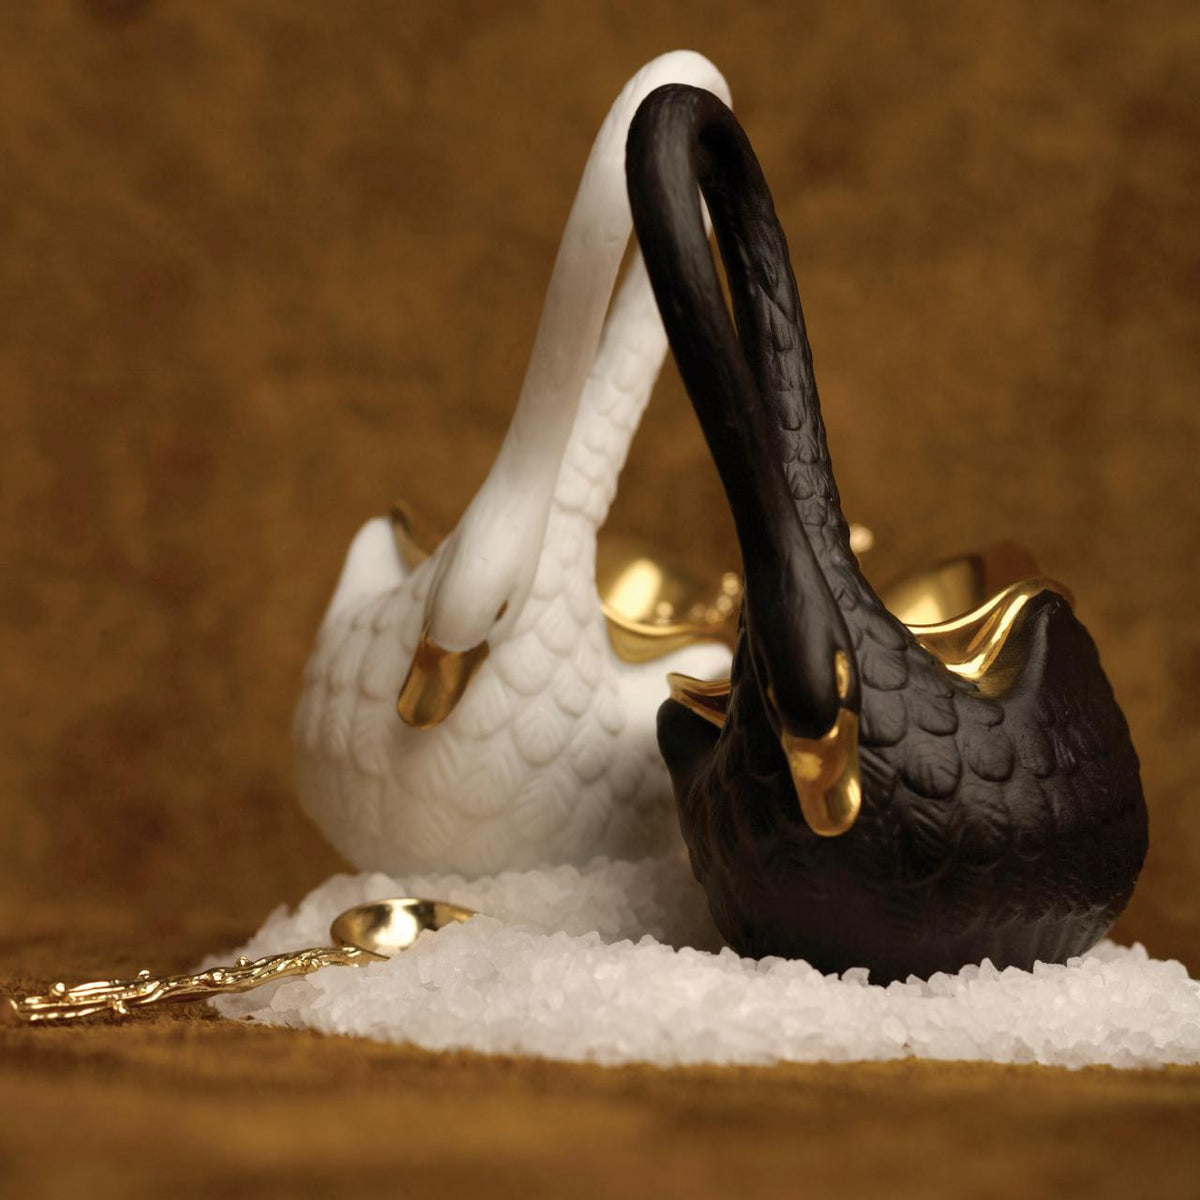 White Swan Salt Cellar with 14K Gold Plated Spoon